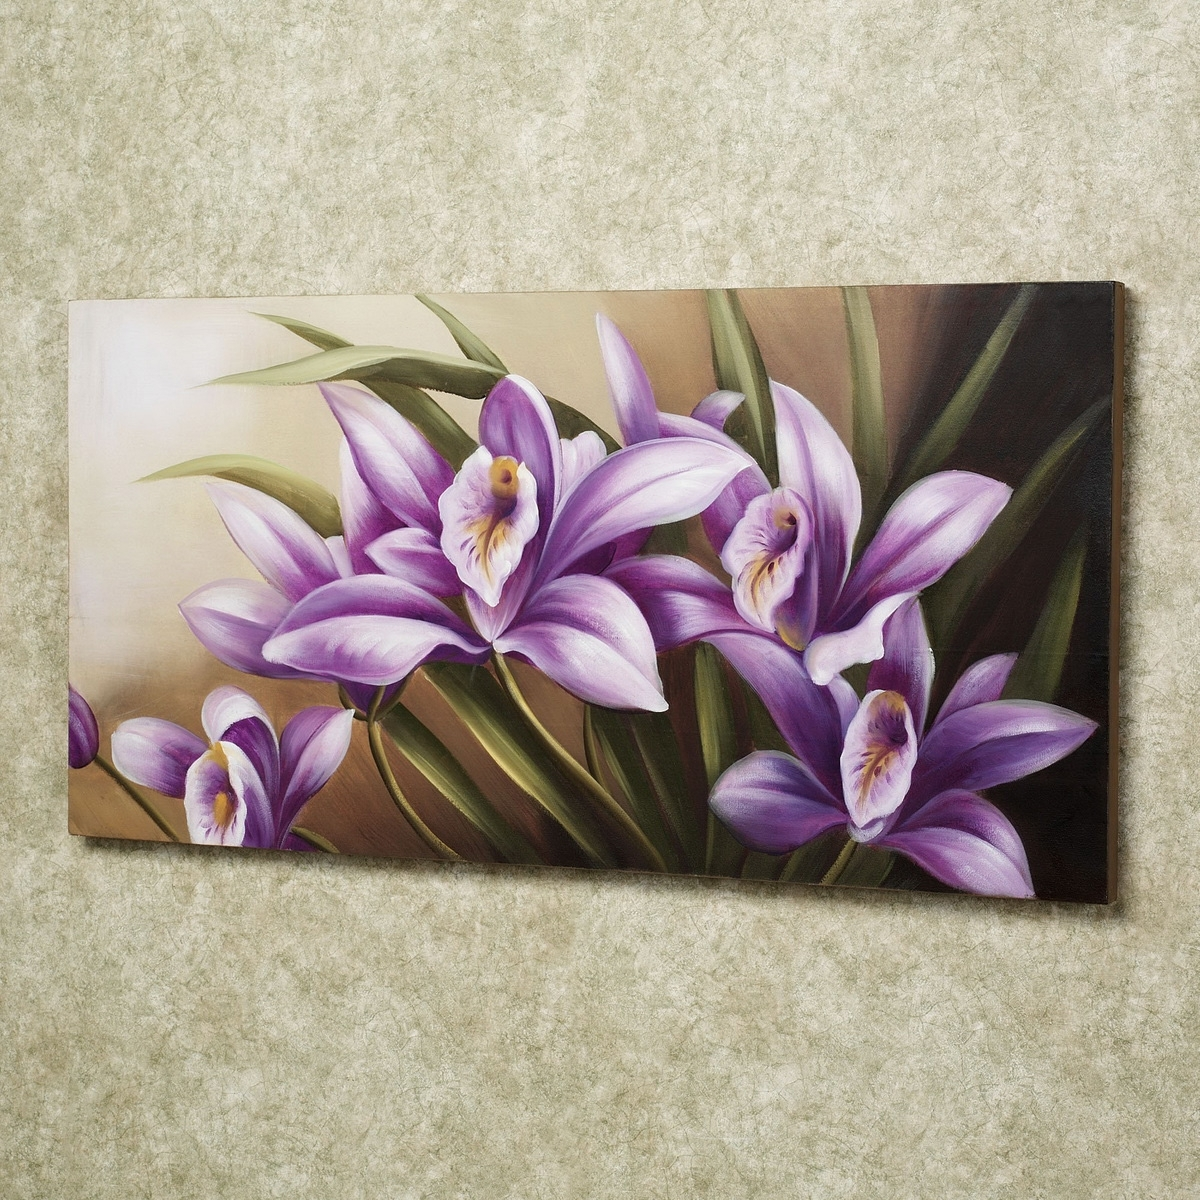 Favorite Fabric Painting Wall Art Intended For Wall Art Designs: Canvas Wall Art Beautiful Flower Painting On (View 14 of 15)